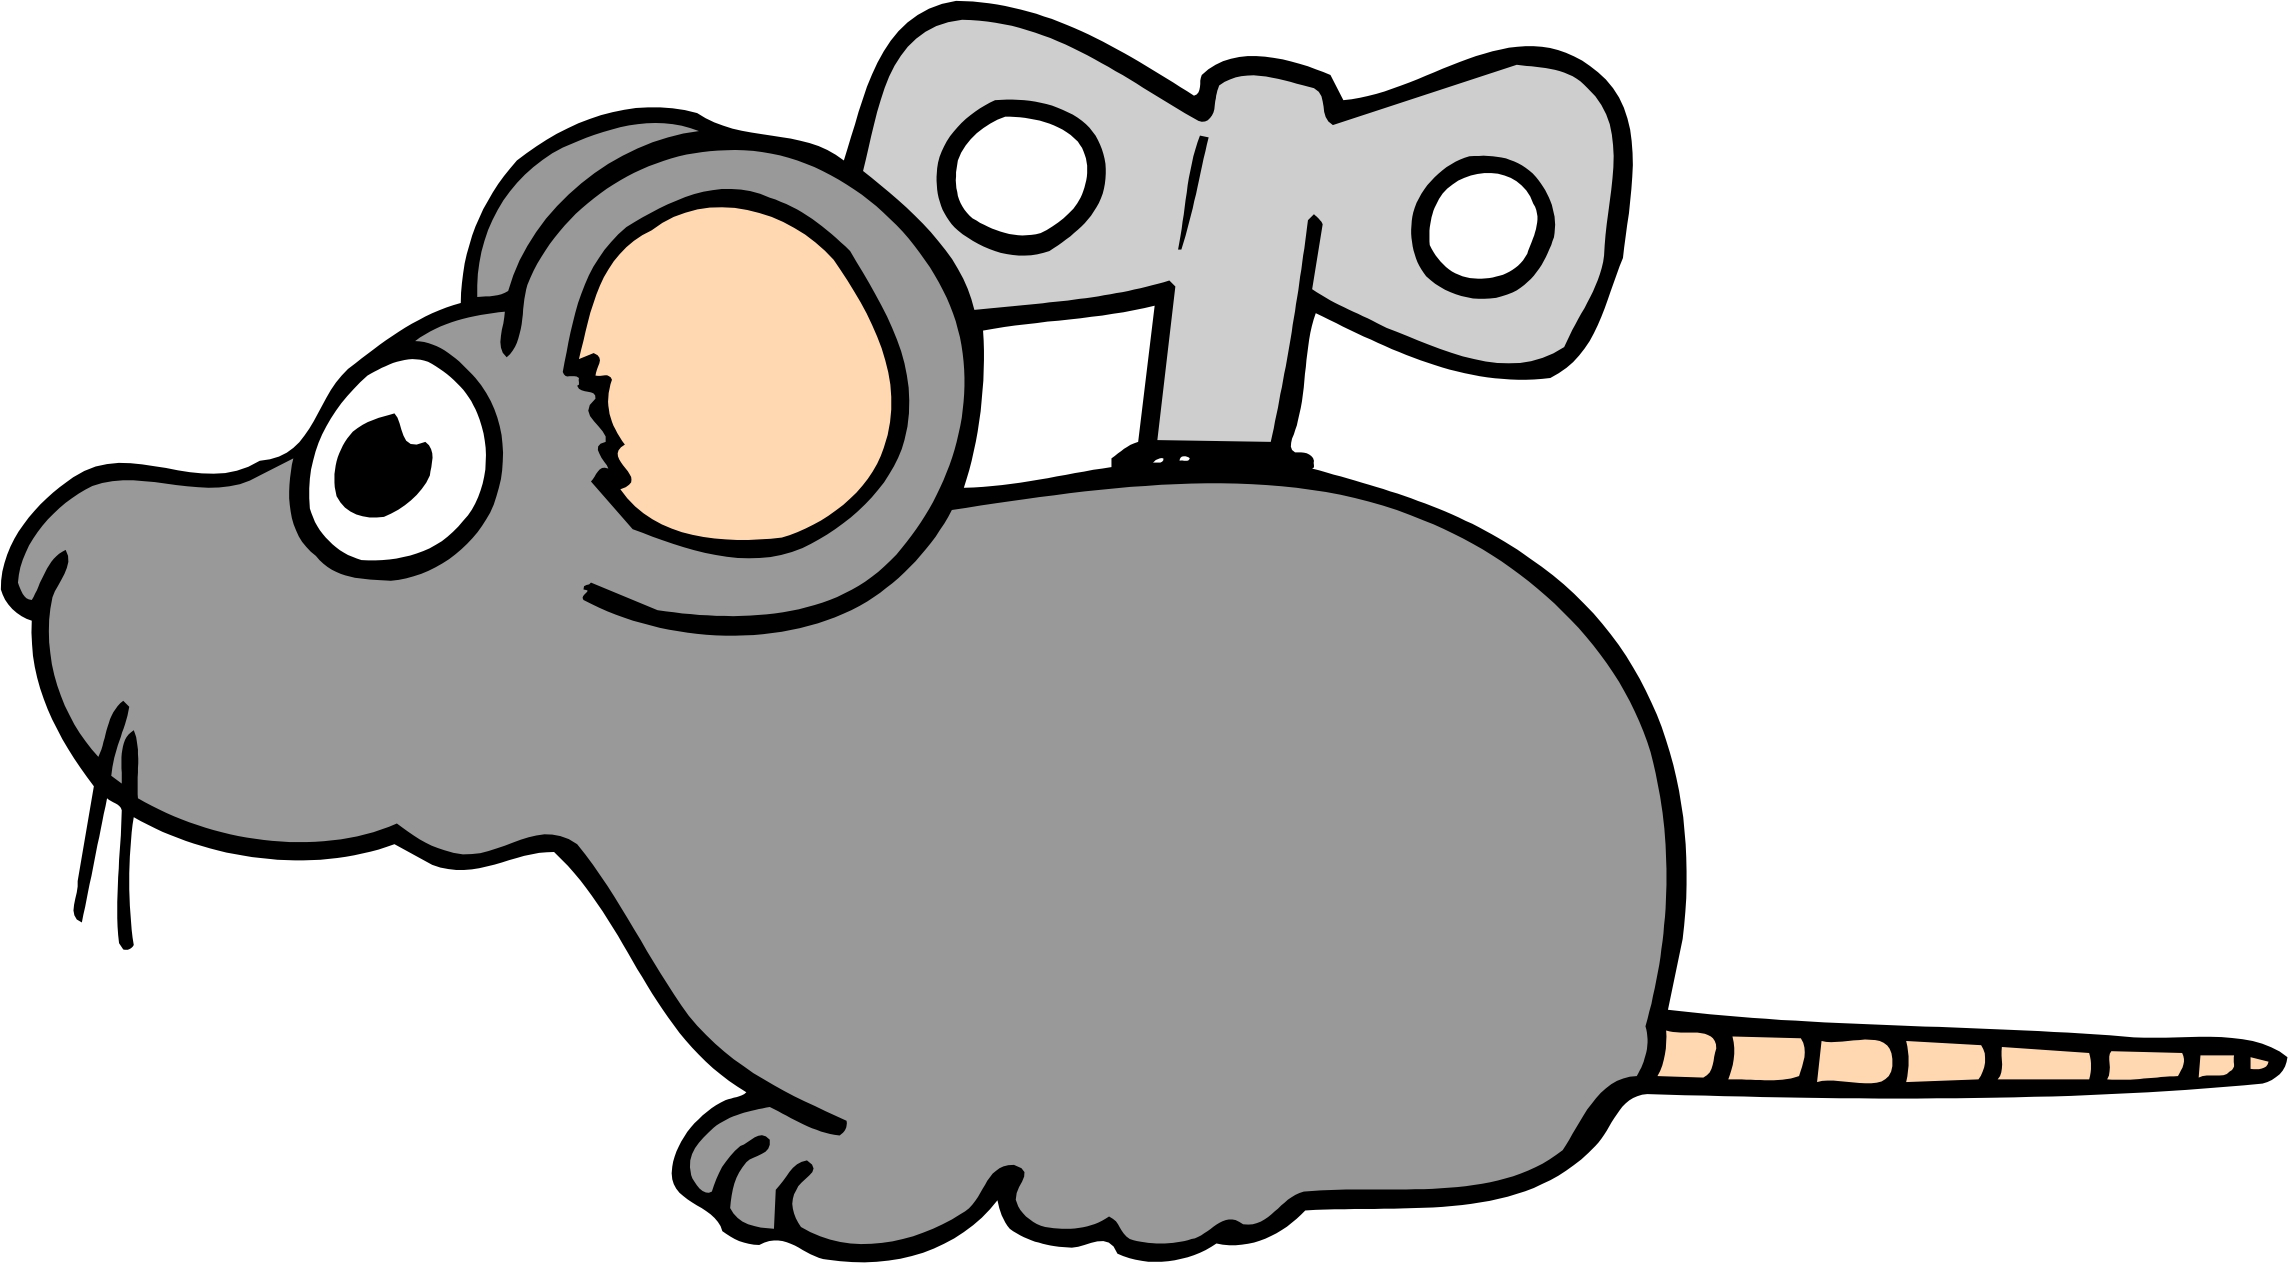 Cartoon Mouse Pic - ClipArt Best